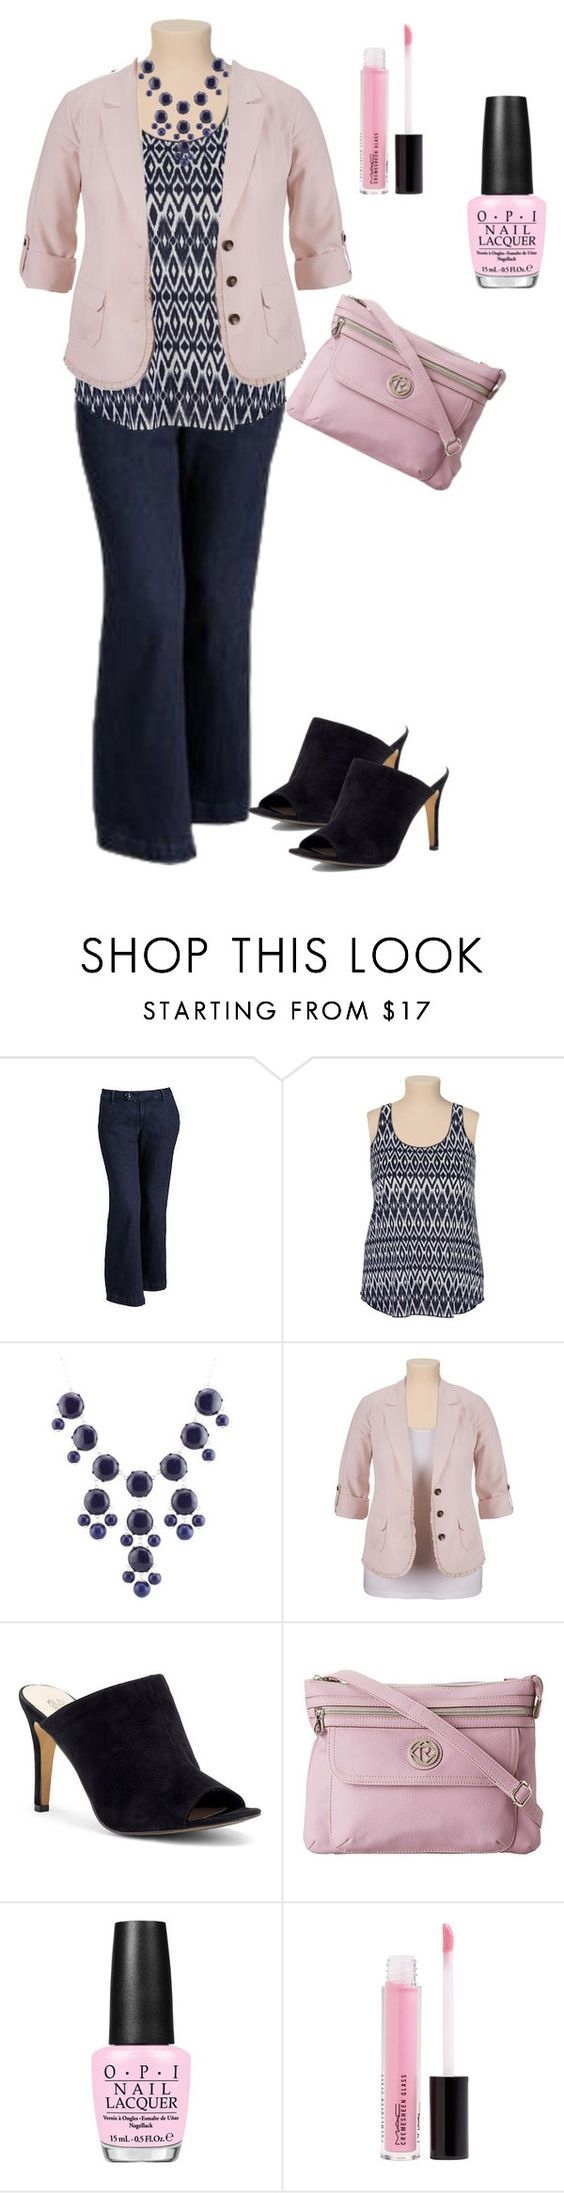 plus size outfit by penny-martin on Polyvore featuring Old Navy, Victoria's Secret, Relic, MAC Cosmetics and OPI